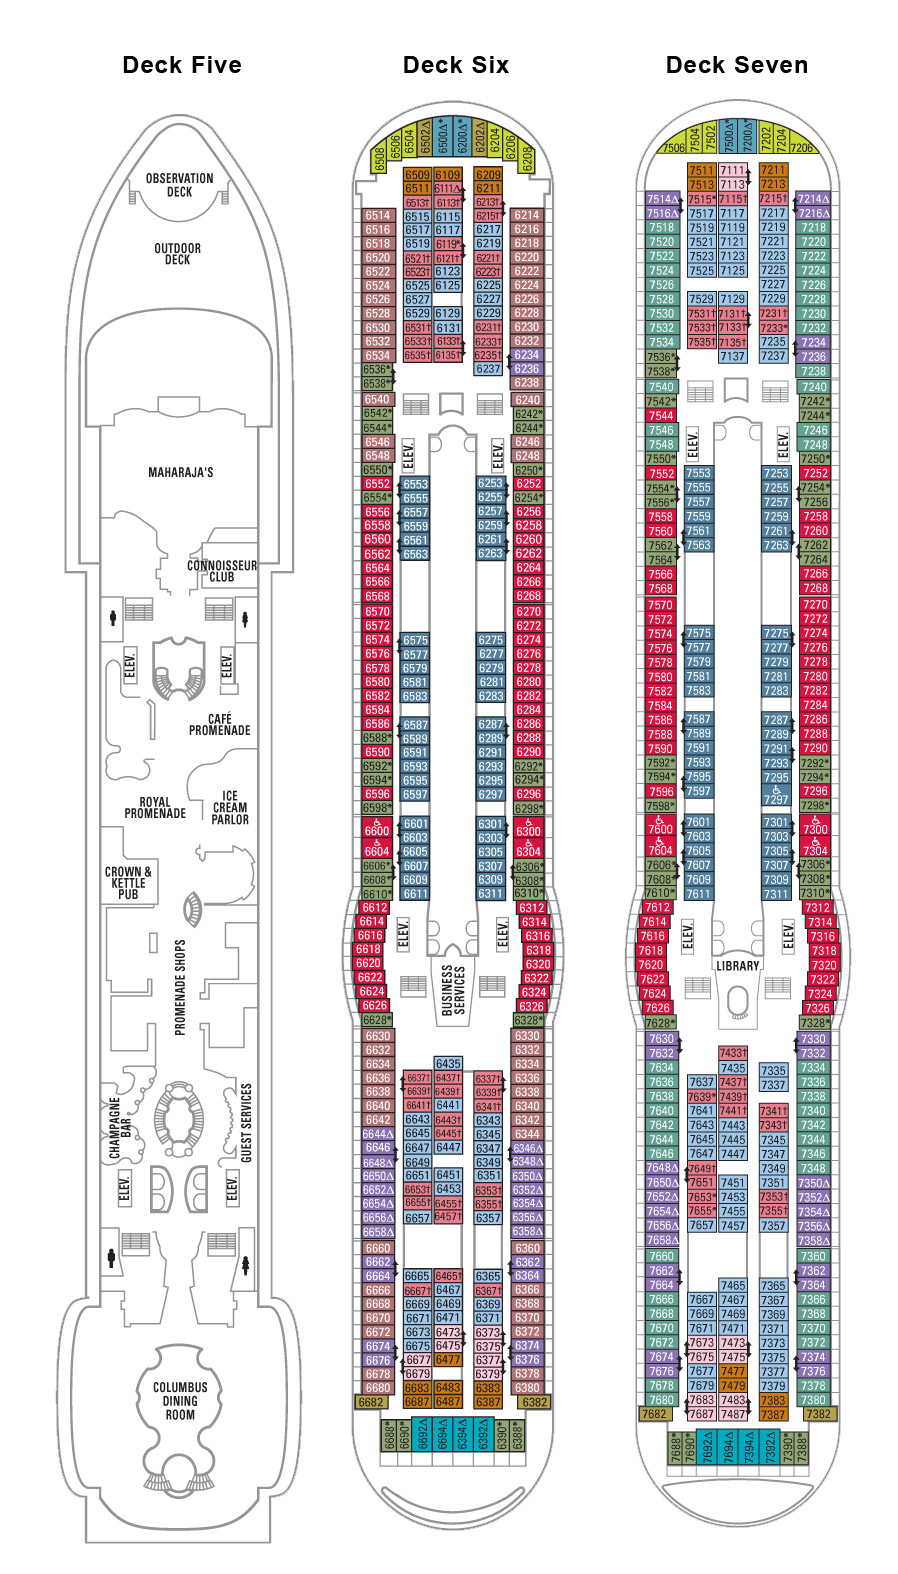 Explorer of the seas deck plan fun fitness travel club this page last updated august 8 baanklon Gallery